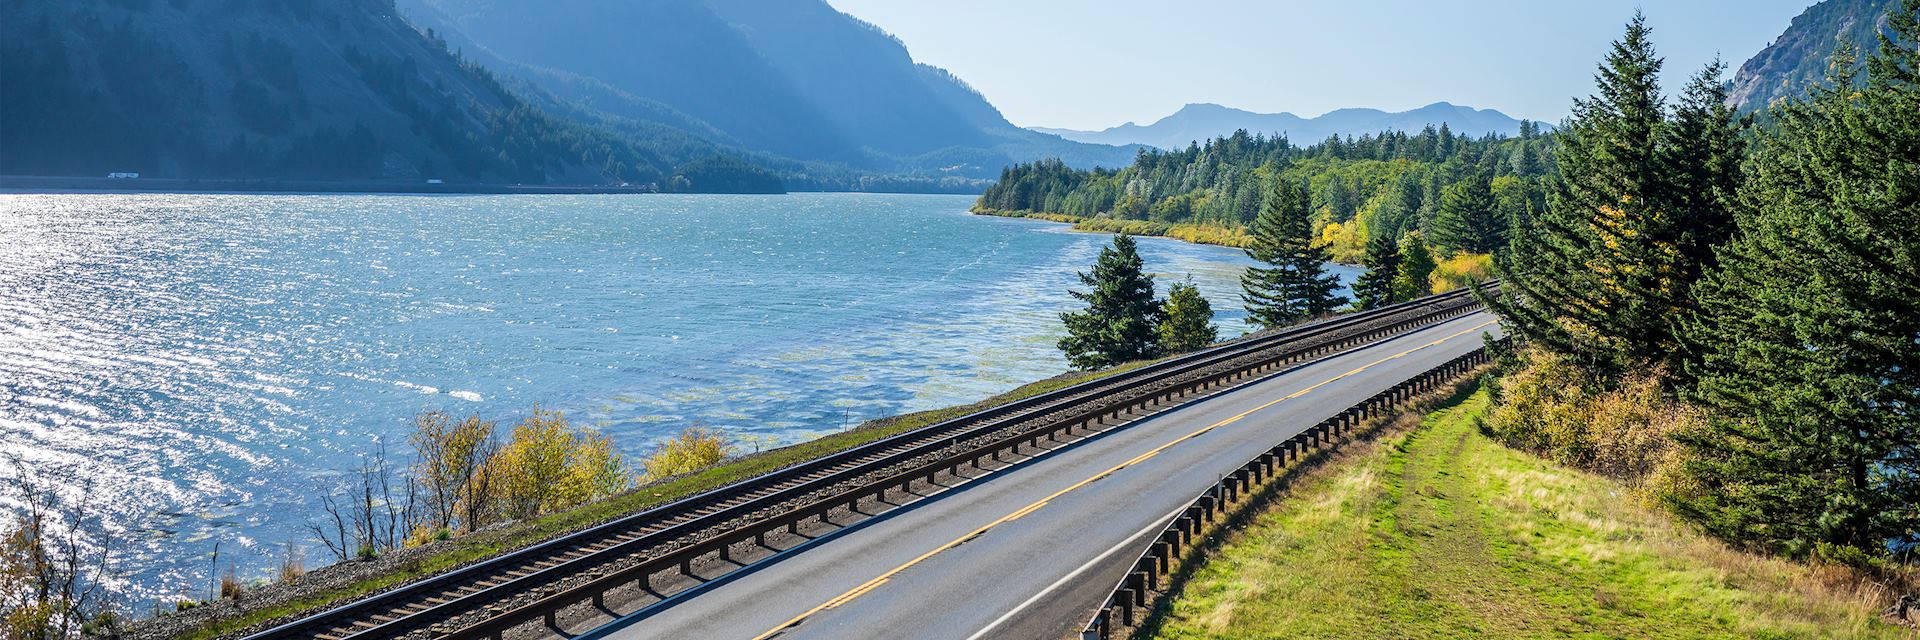 Pacific Northwest Travel Guide   Audley Travel